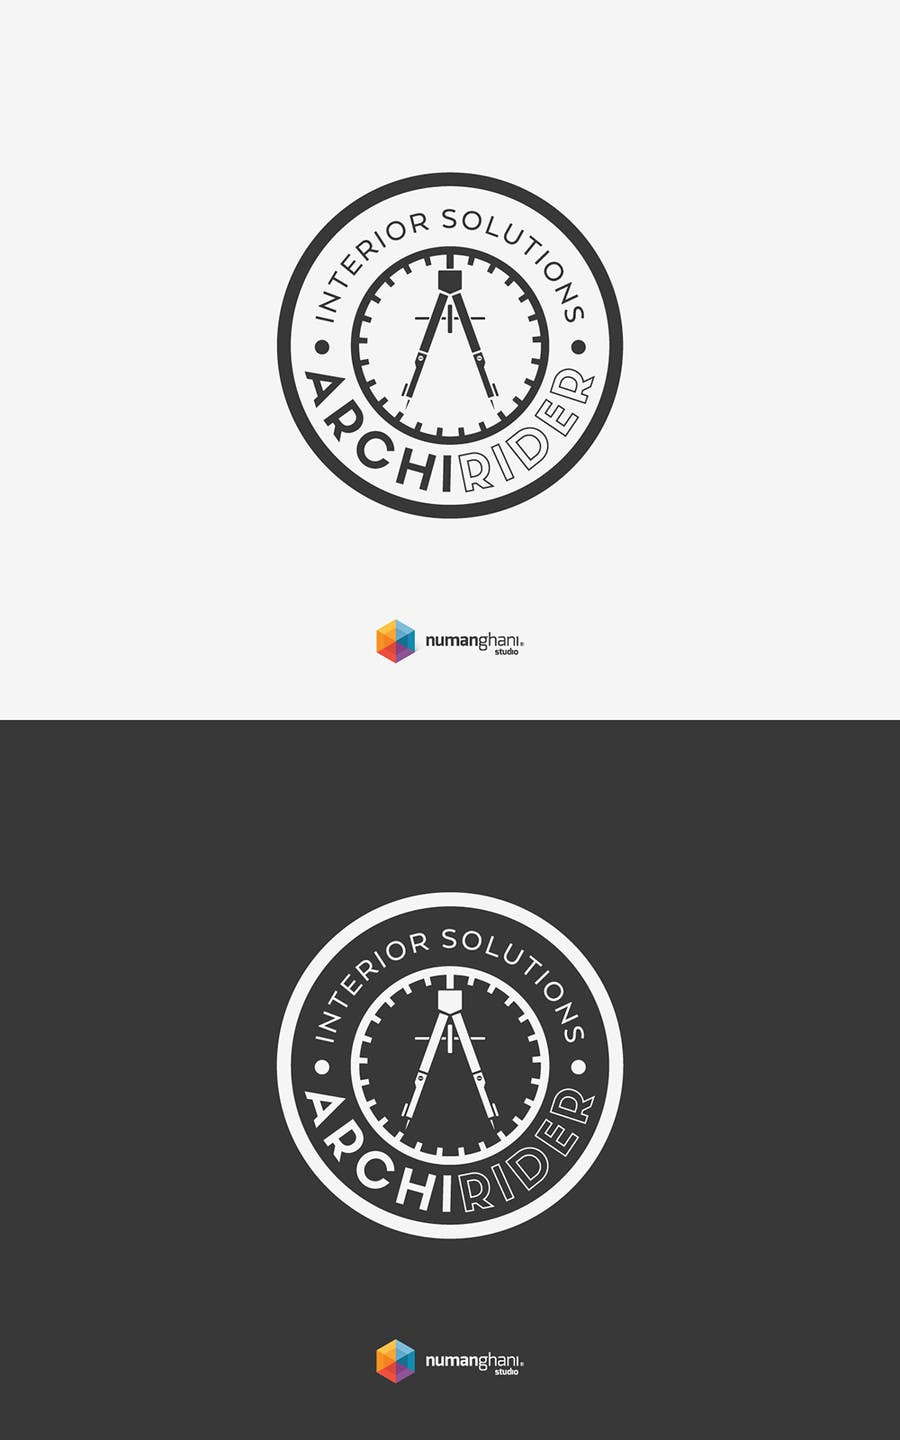 Proposition n°59 du concours Round logo for Architectural company